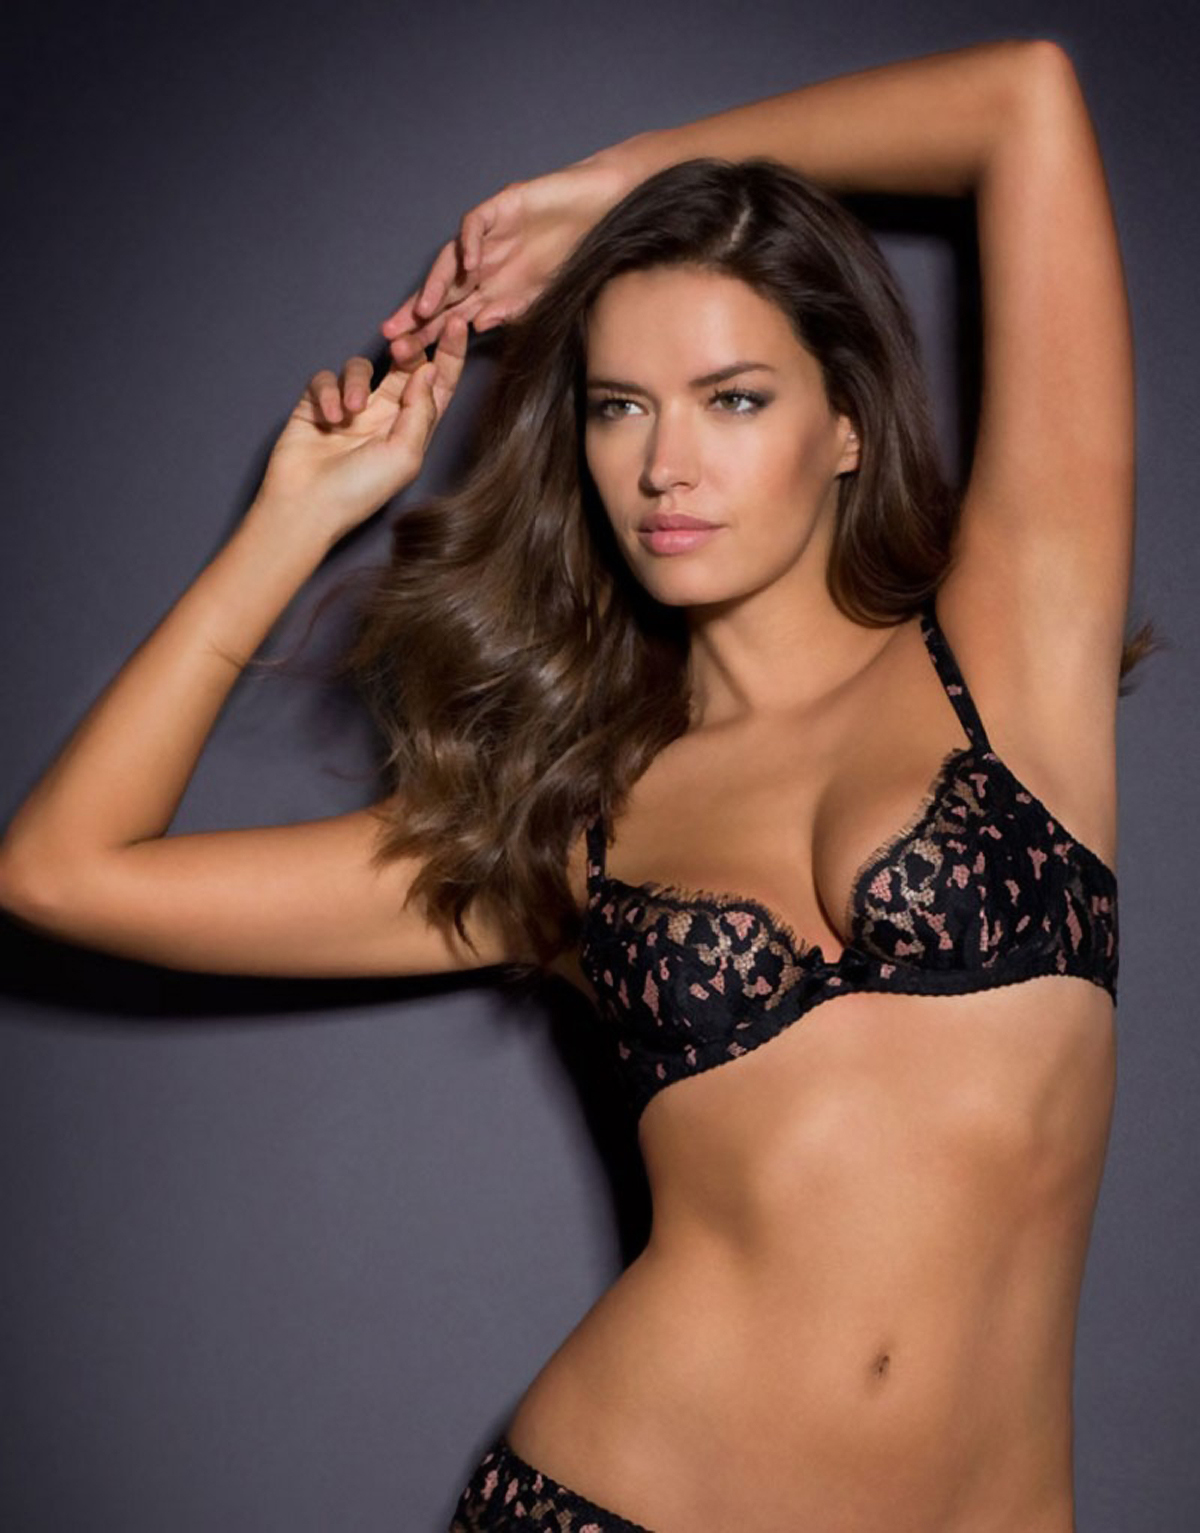 500b91cf11 Michea Crawford - Agent Provocateur collection 2016 (65 фото ...